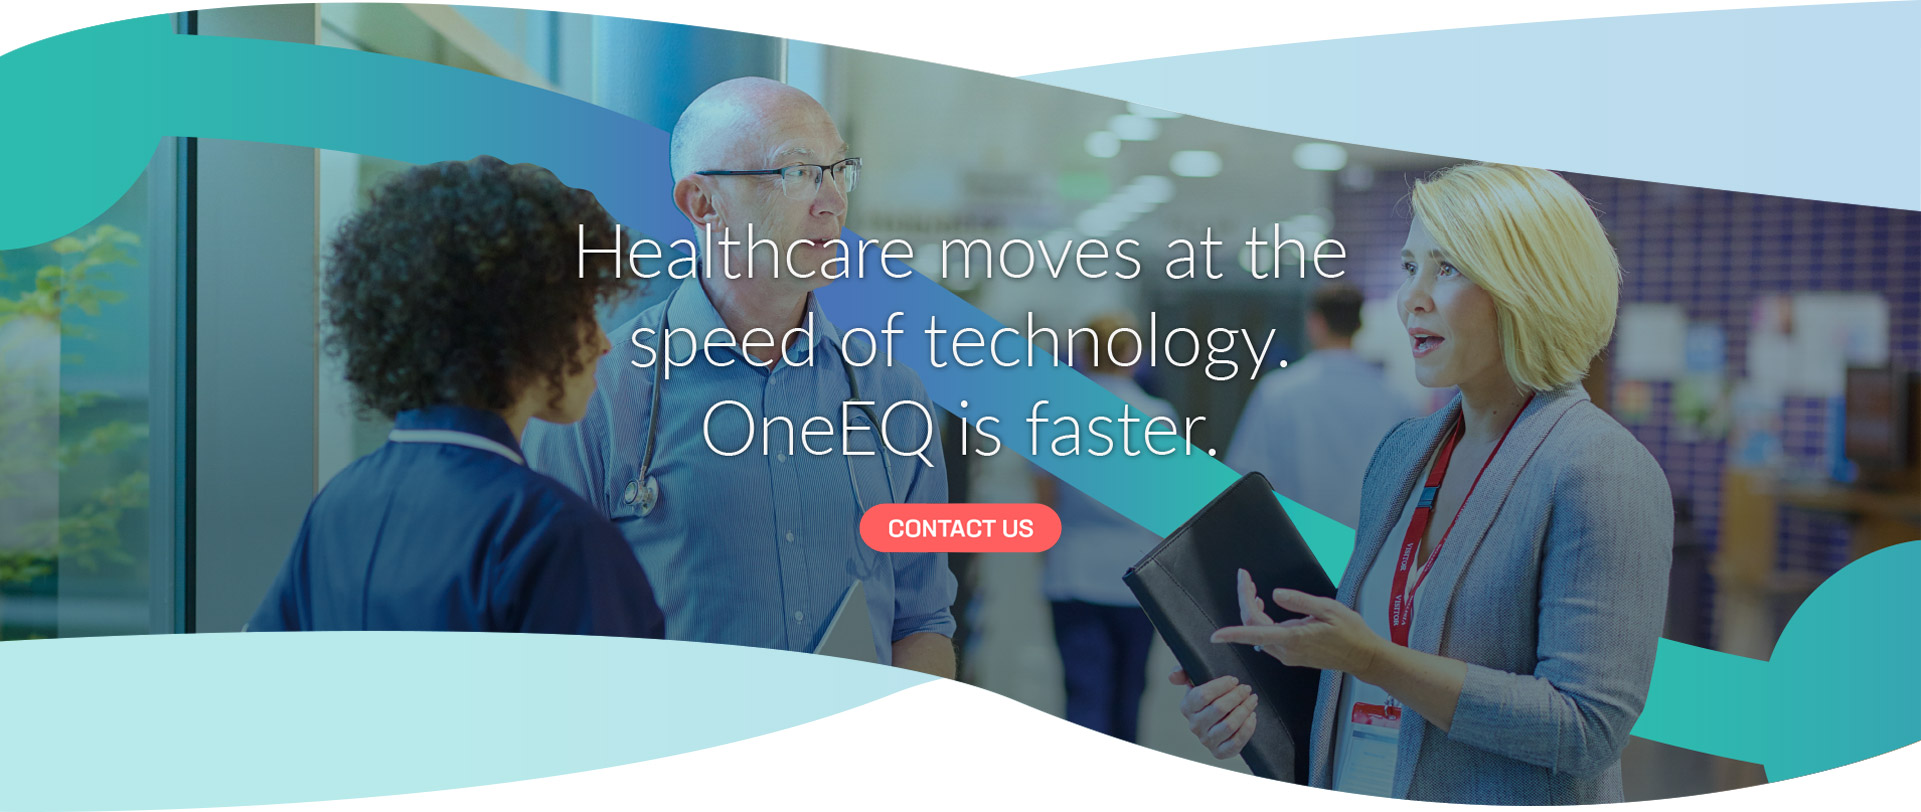 Healthcare moves at the speed of technology. OneEQ is faster.